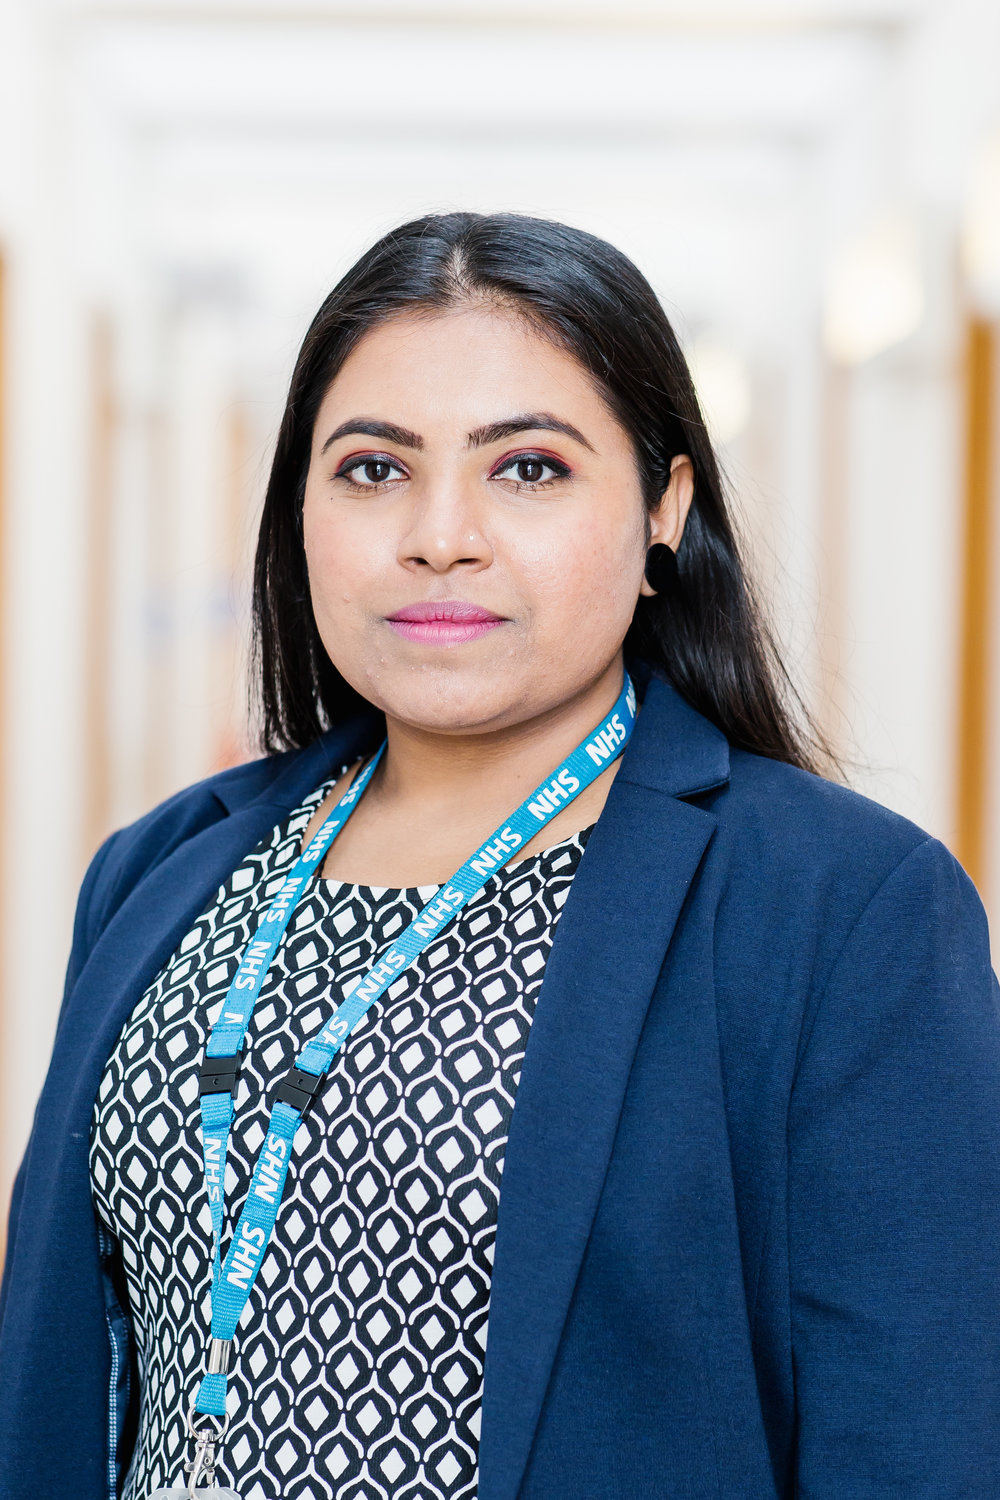 Ms Bhavika Ashwin - Medical Receptionist | Clinical AdministratorBhavika is an excellent communicator and good team workerExperience: 2 yearsLanguages: English | Hindi | GujaratiAchievements:• Customer service skills for 5+ years.